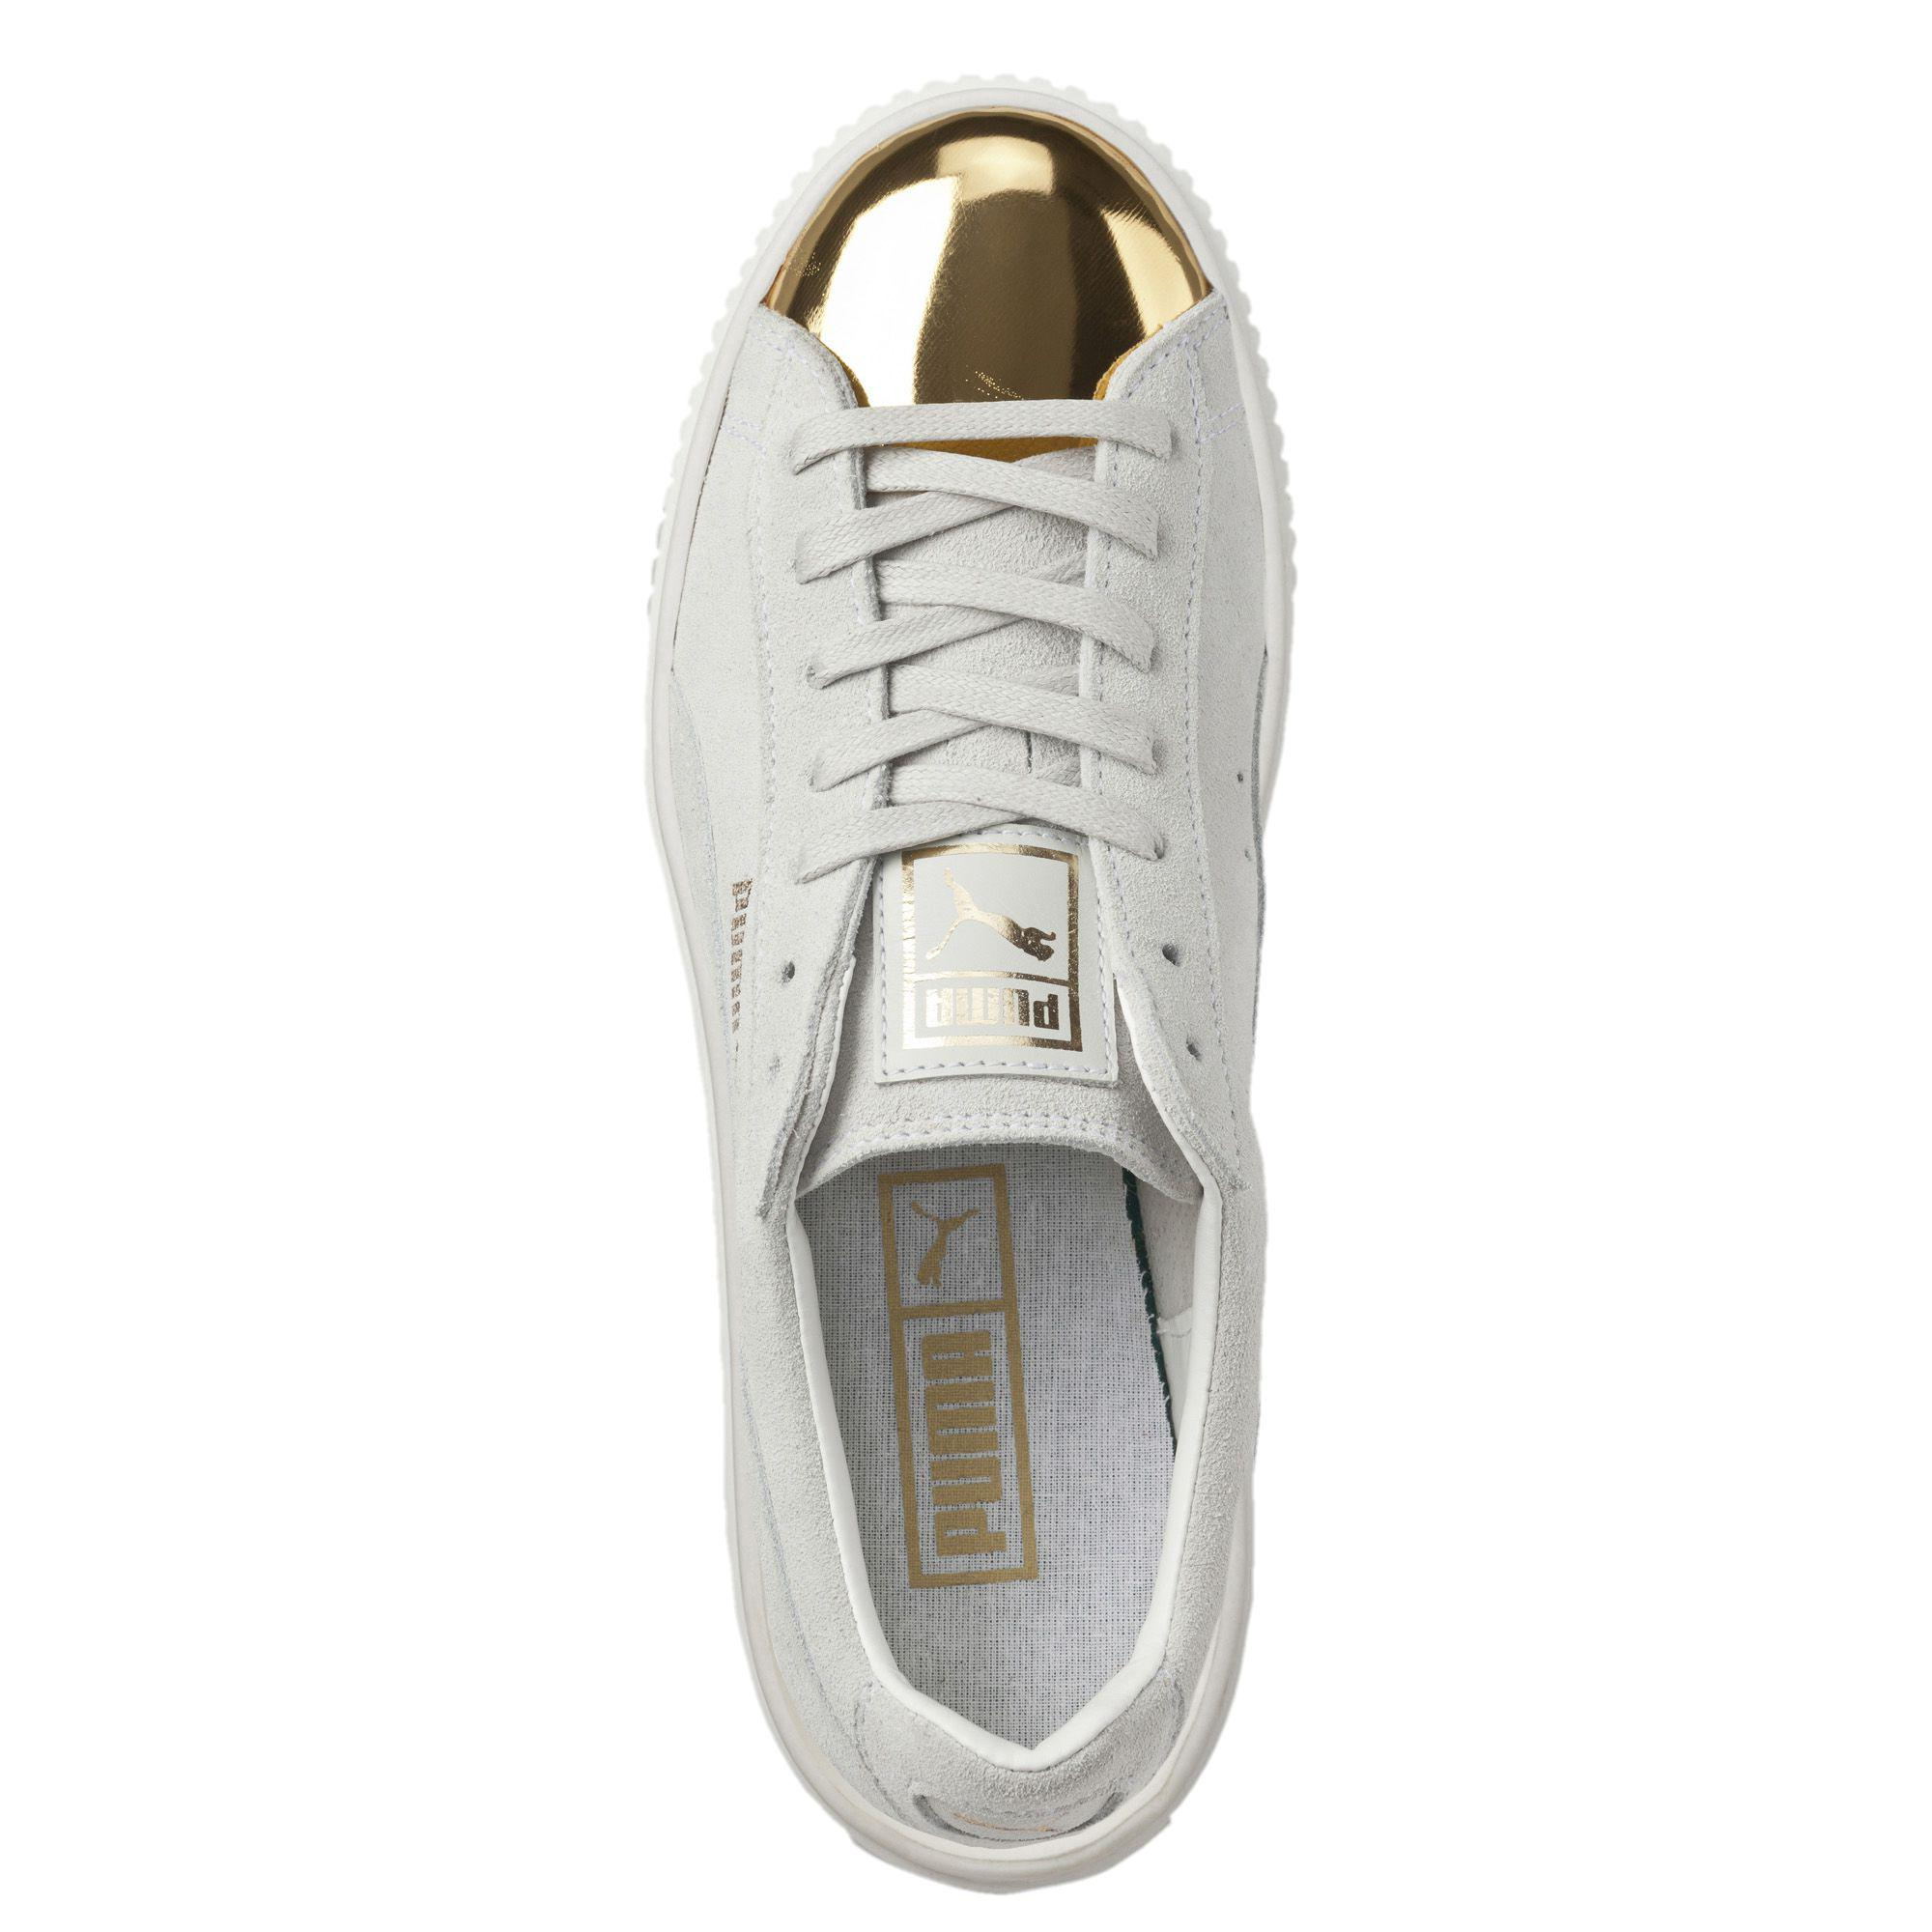 Lyst - PUMA Suede Platform Gold Women s Sneakers in White 1b314a01a